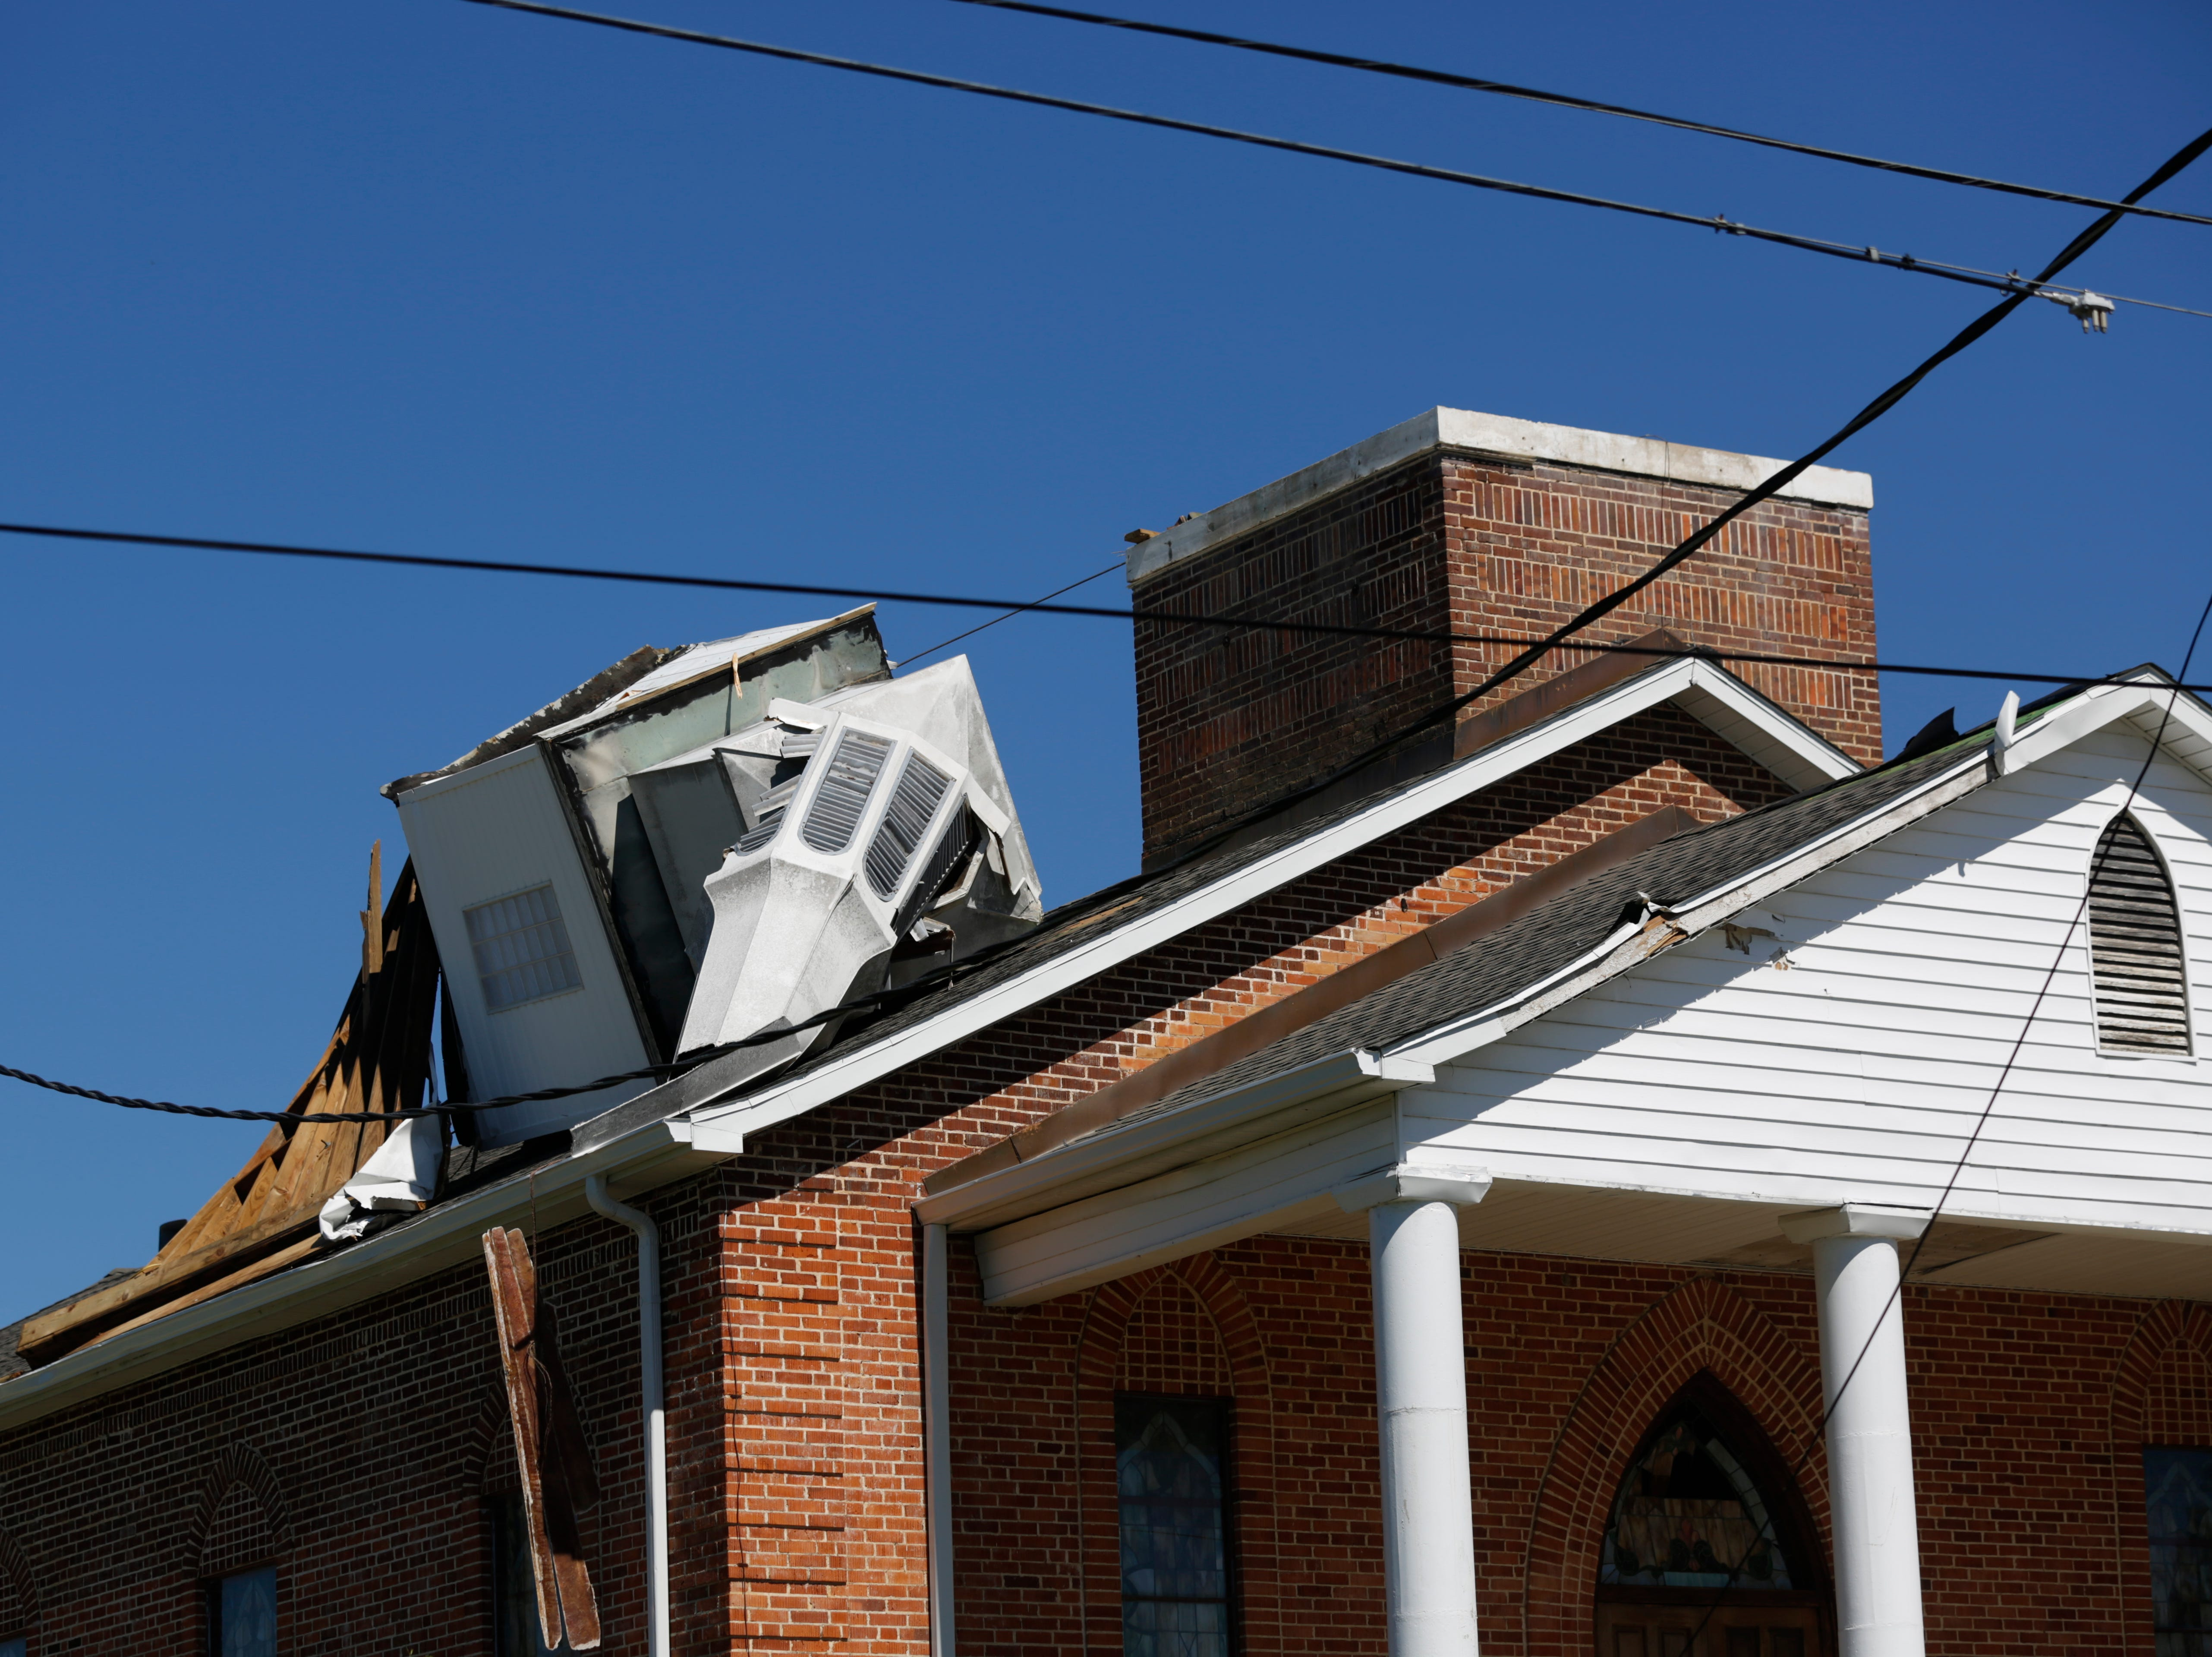 The steeple of Blountstown United Methodist Church in Blountstown, Fla. is destroyed in the aftermath of Hurricane Michael Friday, Oct. 12, 2018.